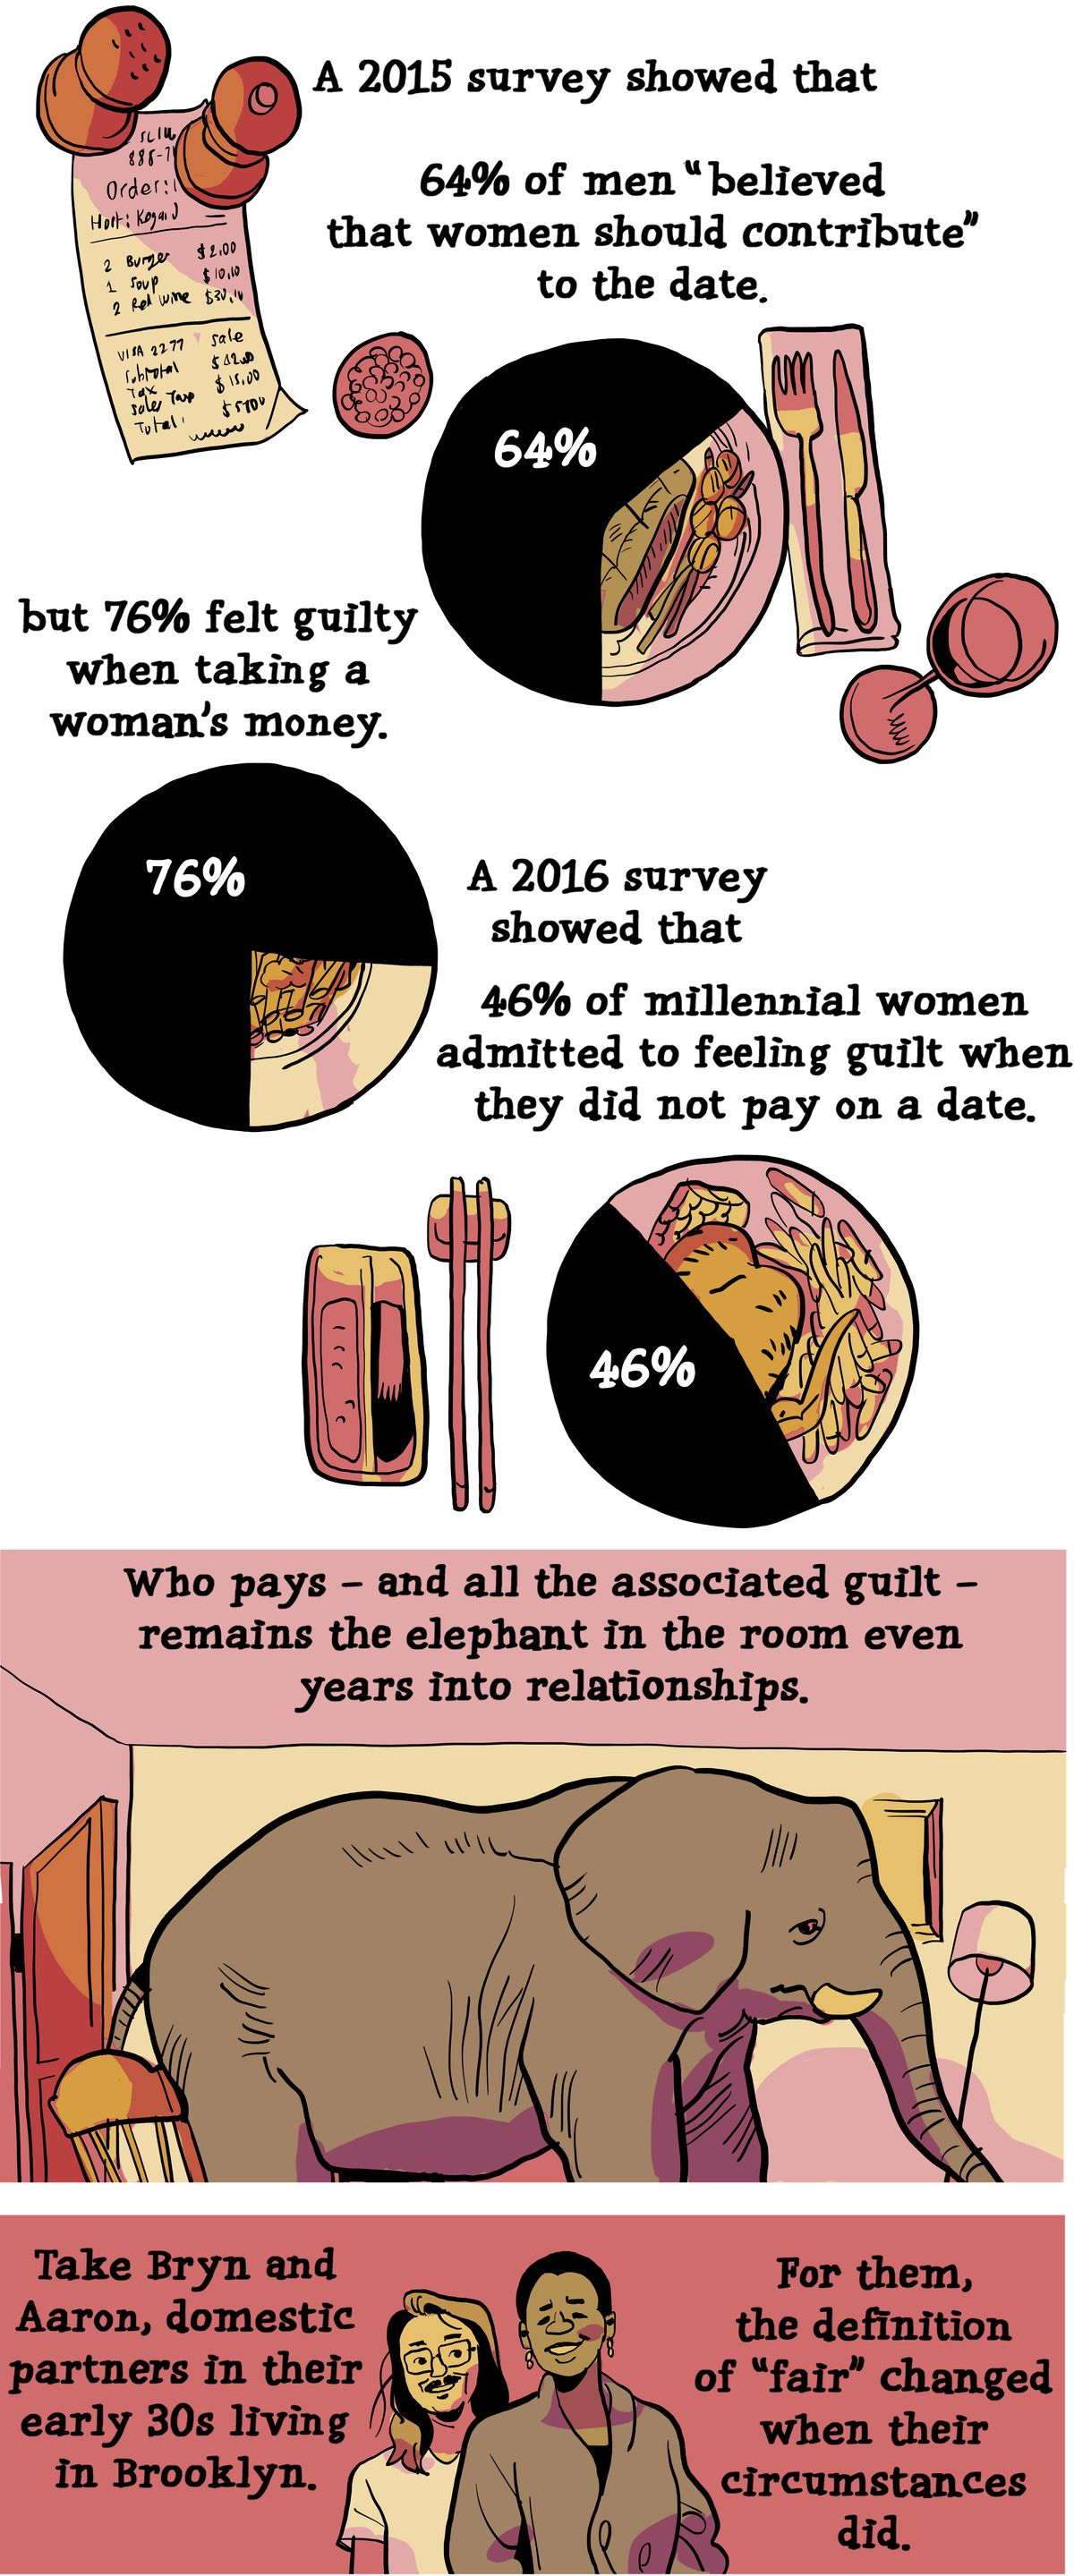 """A 2015 survey showed 64% of men """"believed that women should contribute"""" to the date, but 76% felt guilty when taking a woman's money. A 2016 survey showed 46 % of millennial women admitted to feeling guilt when they did not pay on a date. Who pays — and all the associated guilt — remains the elephant in the room even years into relationships. Take Bryn and Aaron, domestic partners in their early 30s living in Brooklyn."""